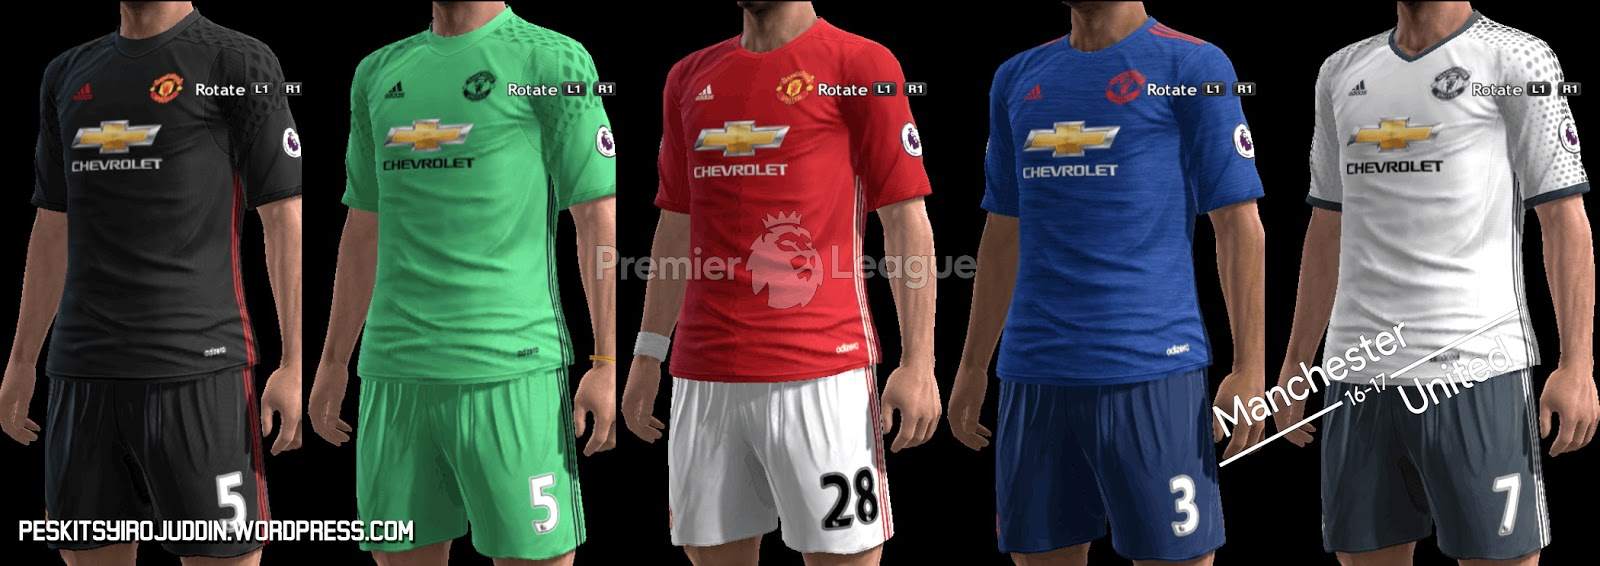 Pes kits 2017 pictures free download - Manchester United Kits 2016 17